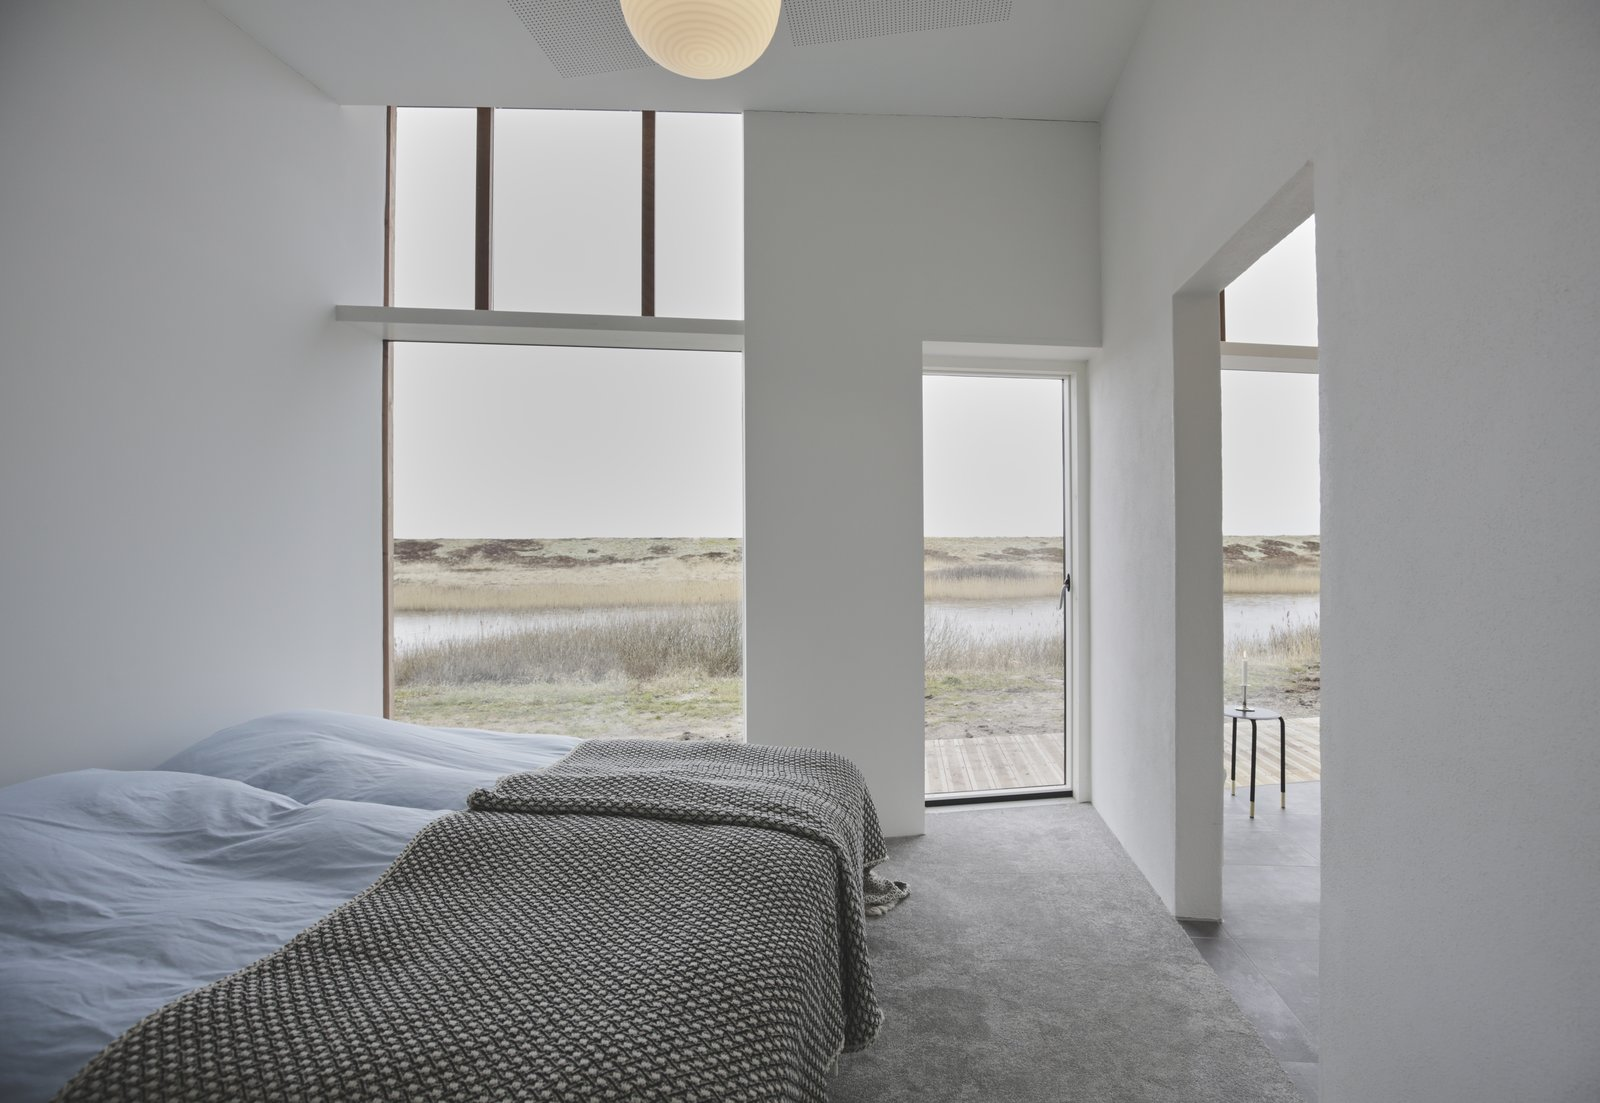 Bedroom, Carpet Floor, Bed, and Pendant Lighting The lake-facing outdoor terrace can be accessed through the bedroom.  Photo 7 of 11 in Rent This Danish A-Frame For Your Next Nordic Escape